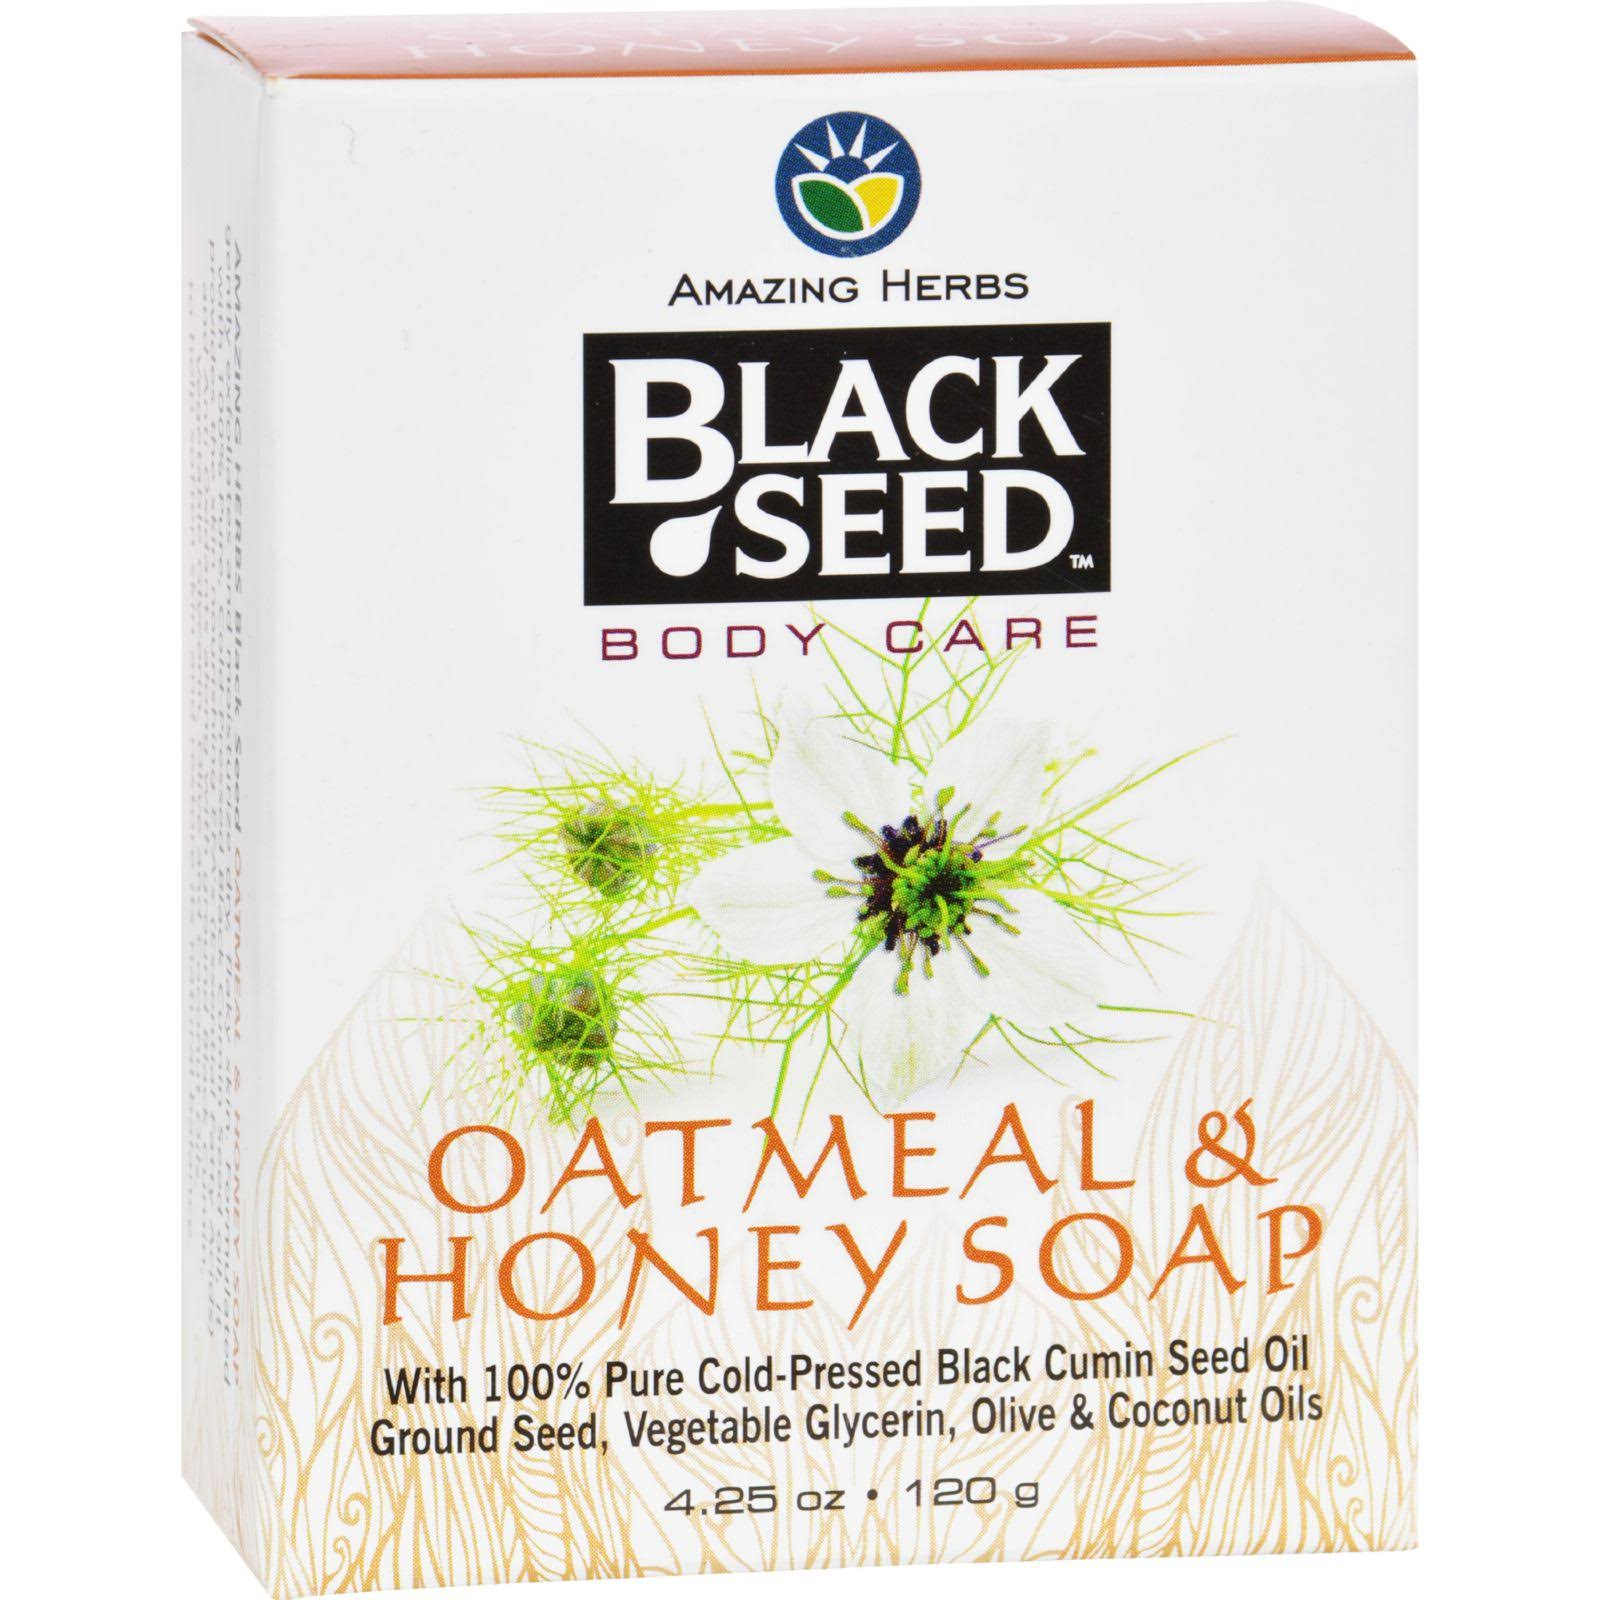 Amazing Herbs Black Seed Bar Soap - Oatmeal and Honey, 4.25oz